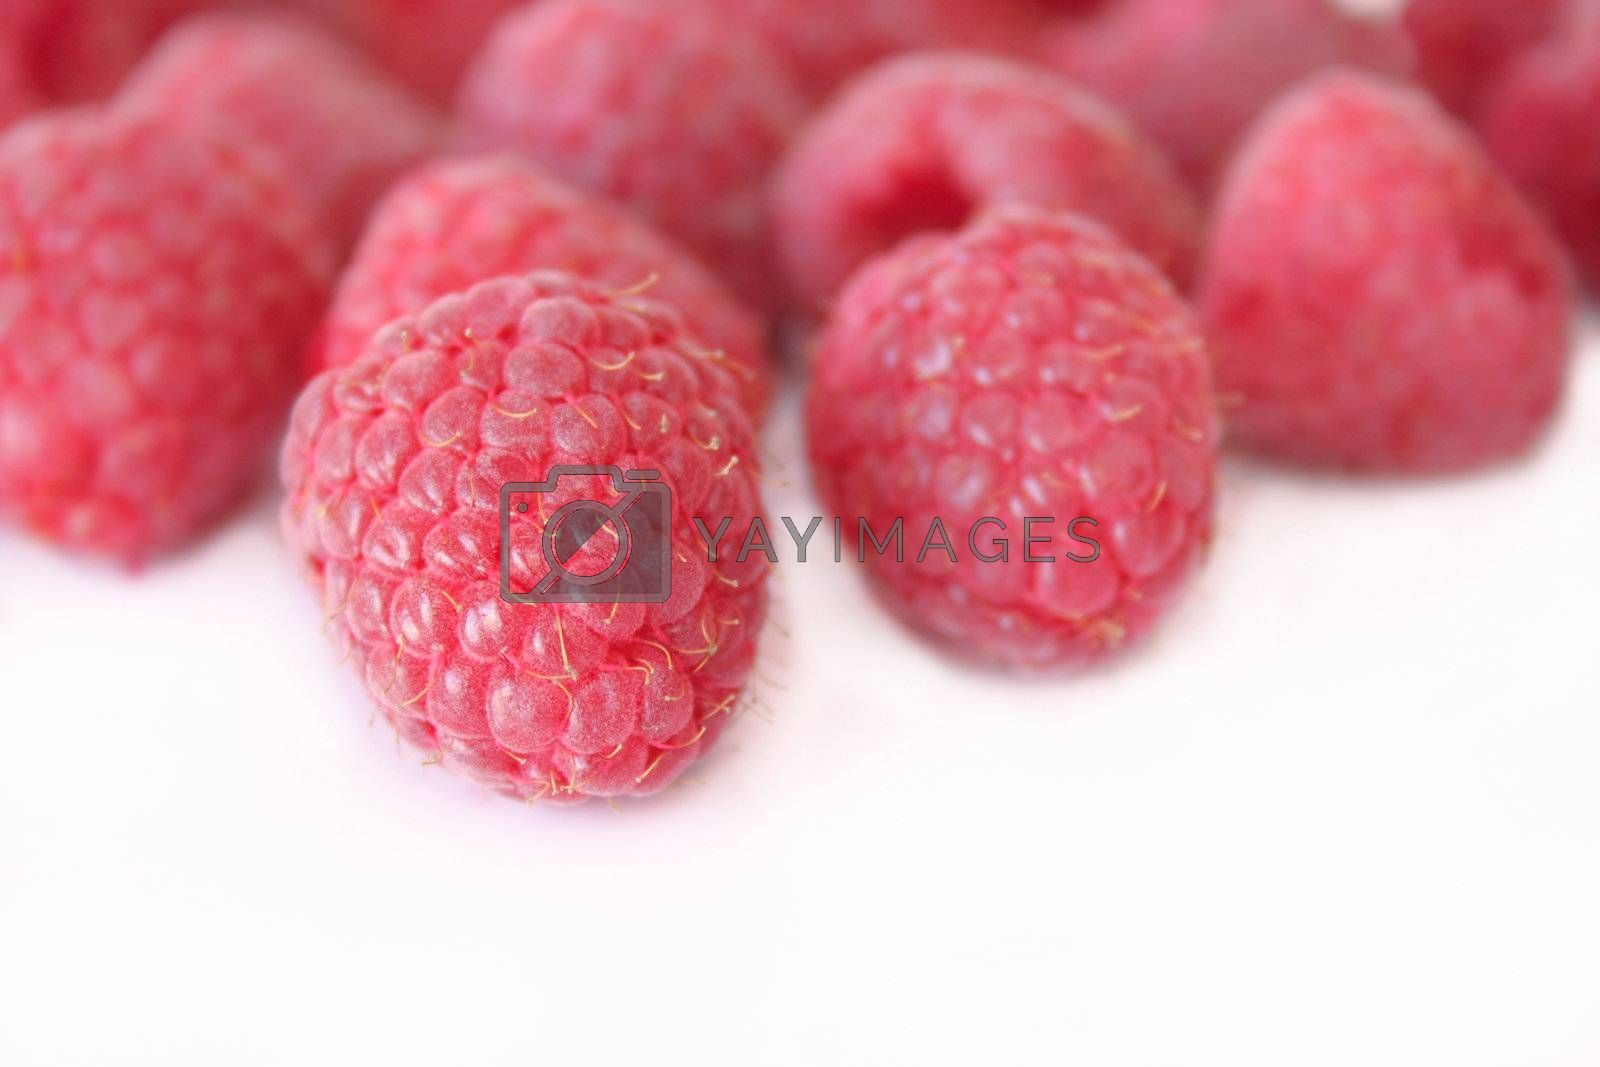 A group of raspberries on a white background.  Copyspace is available.